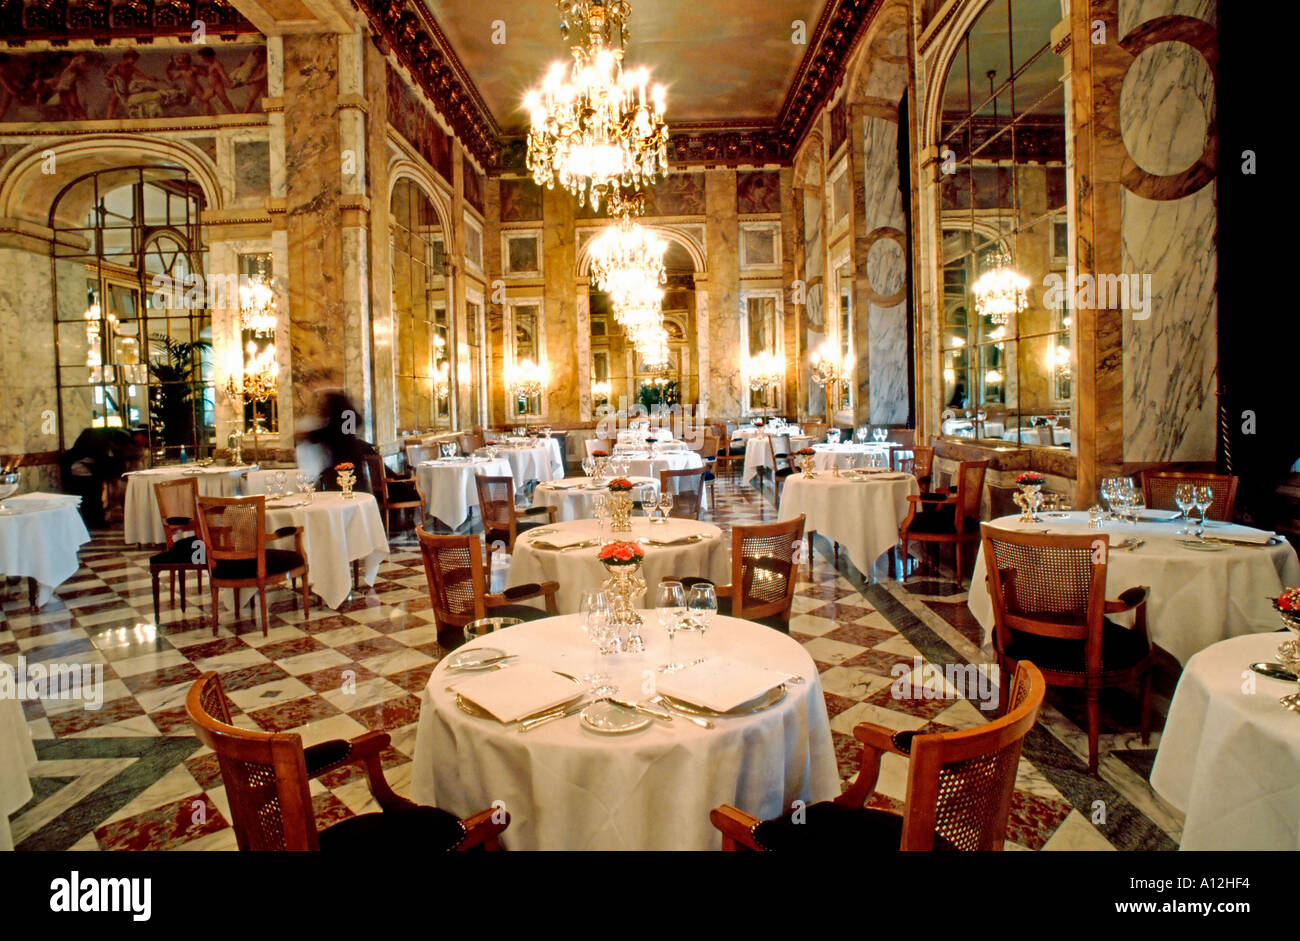 Paris france french haute cuisine restaurant interior